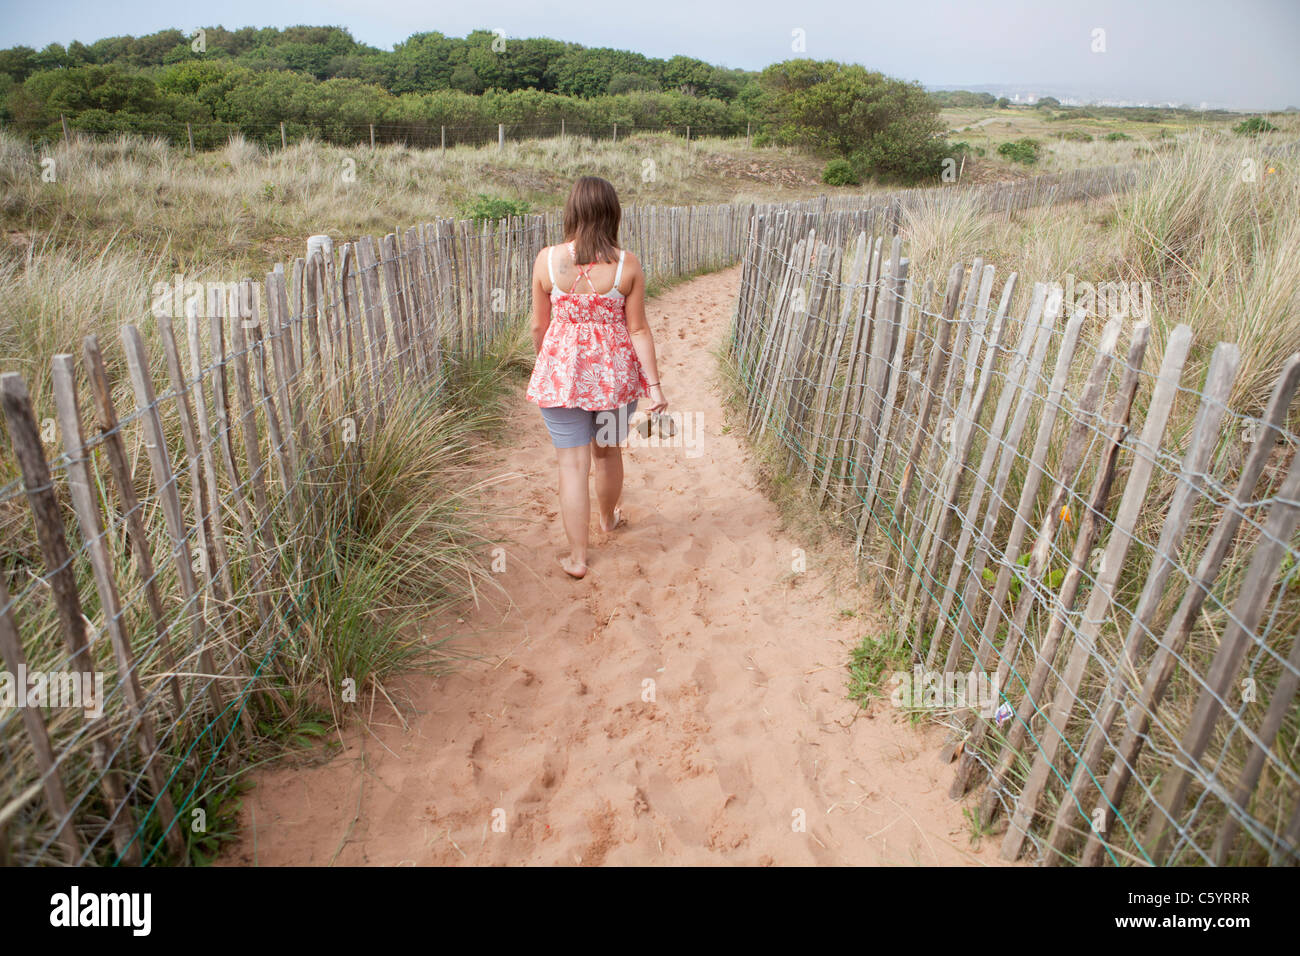 A woman walks down a sand track toward the sea front and beach - Stock Image